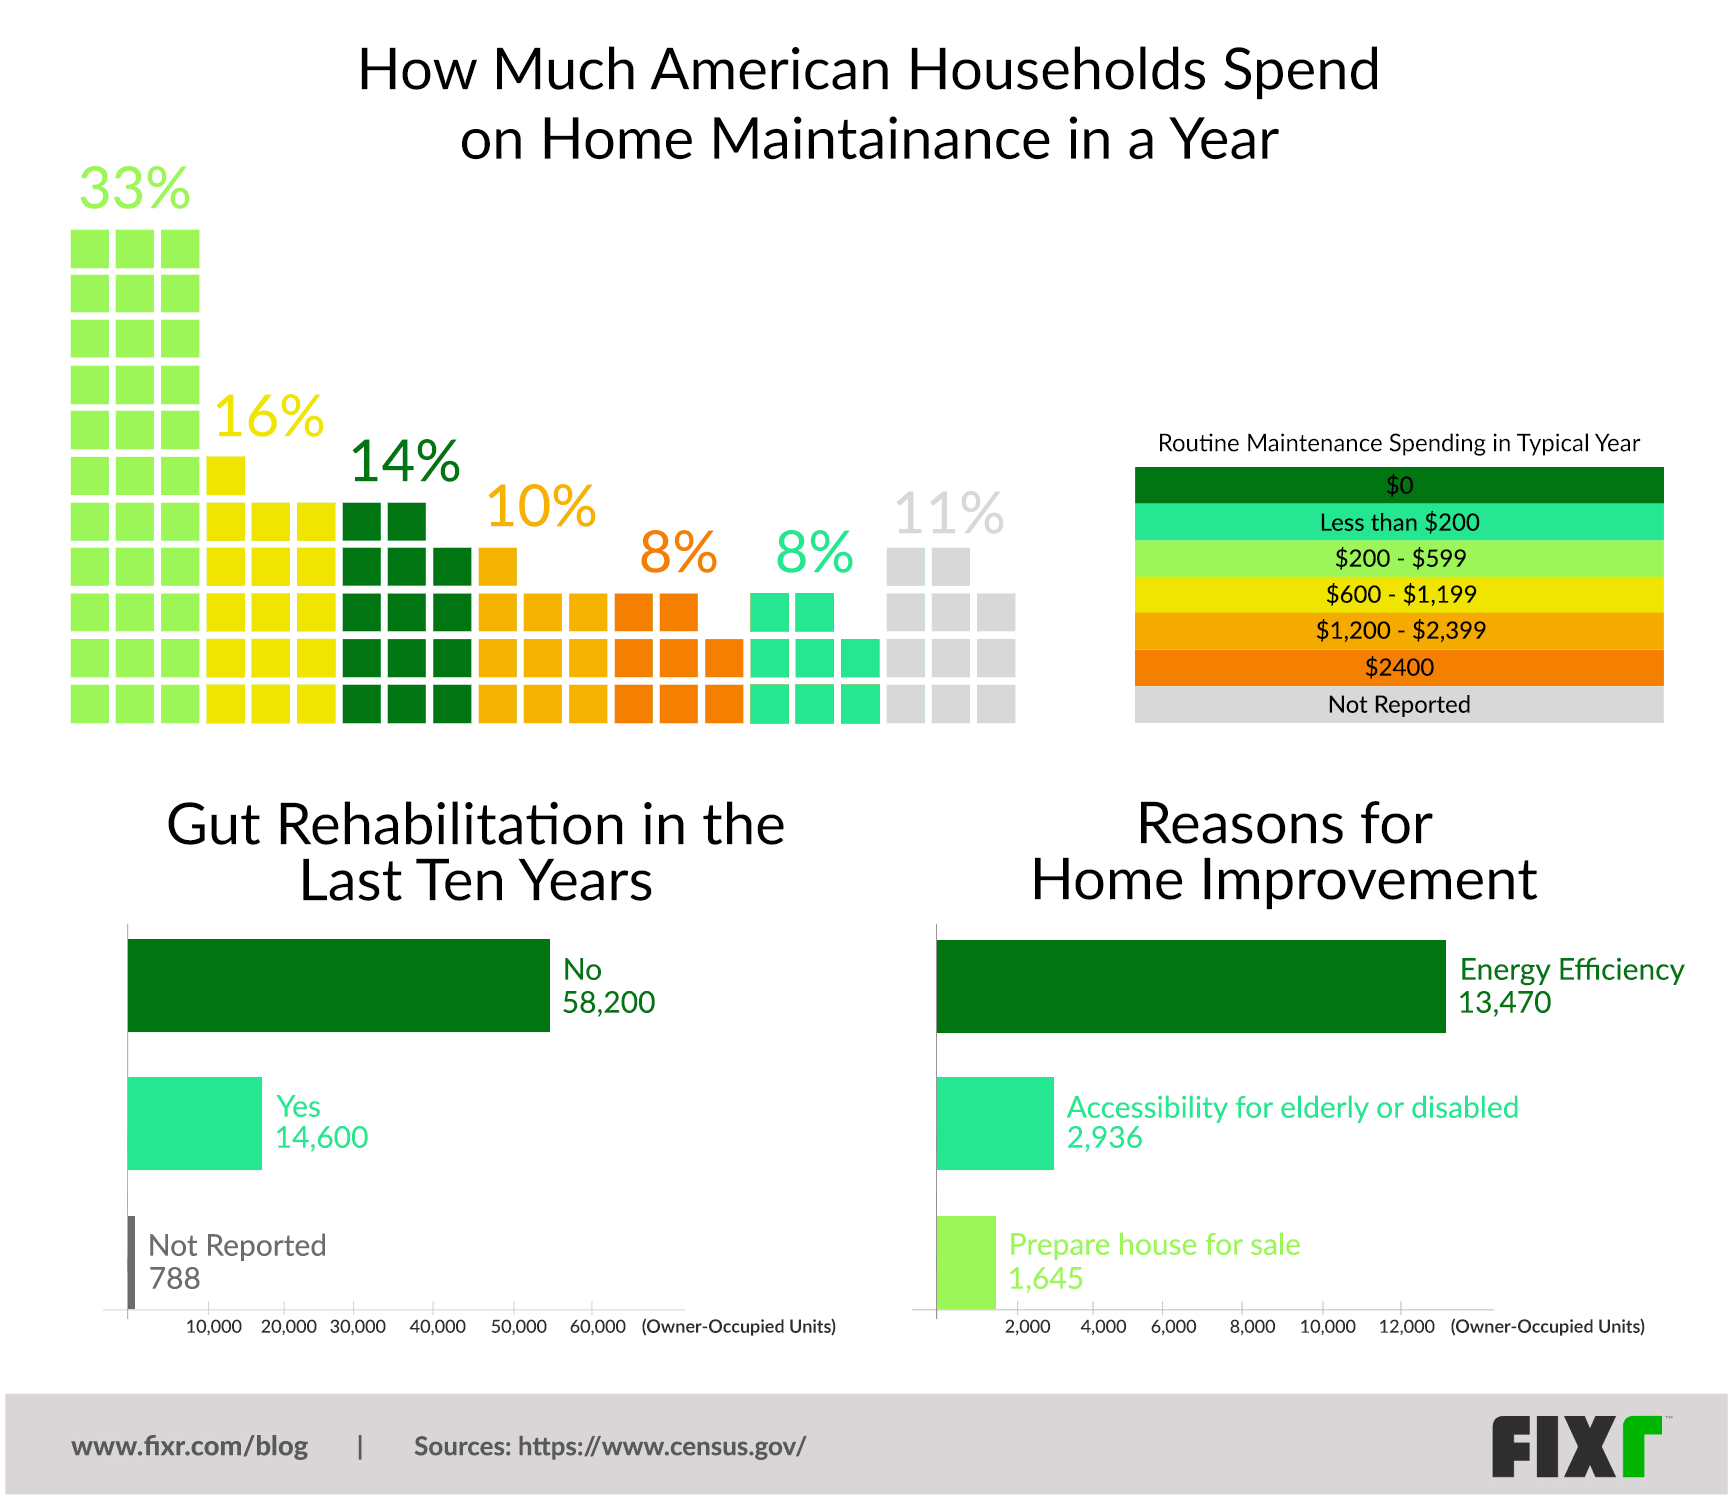 A Visual Representation of Home Maintenance and Improvement Expenditures for 2017